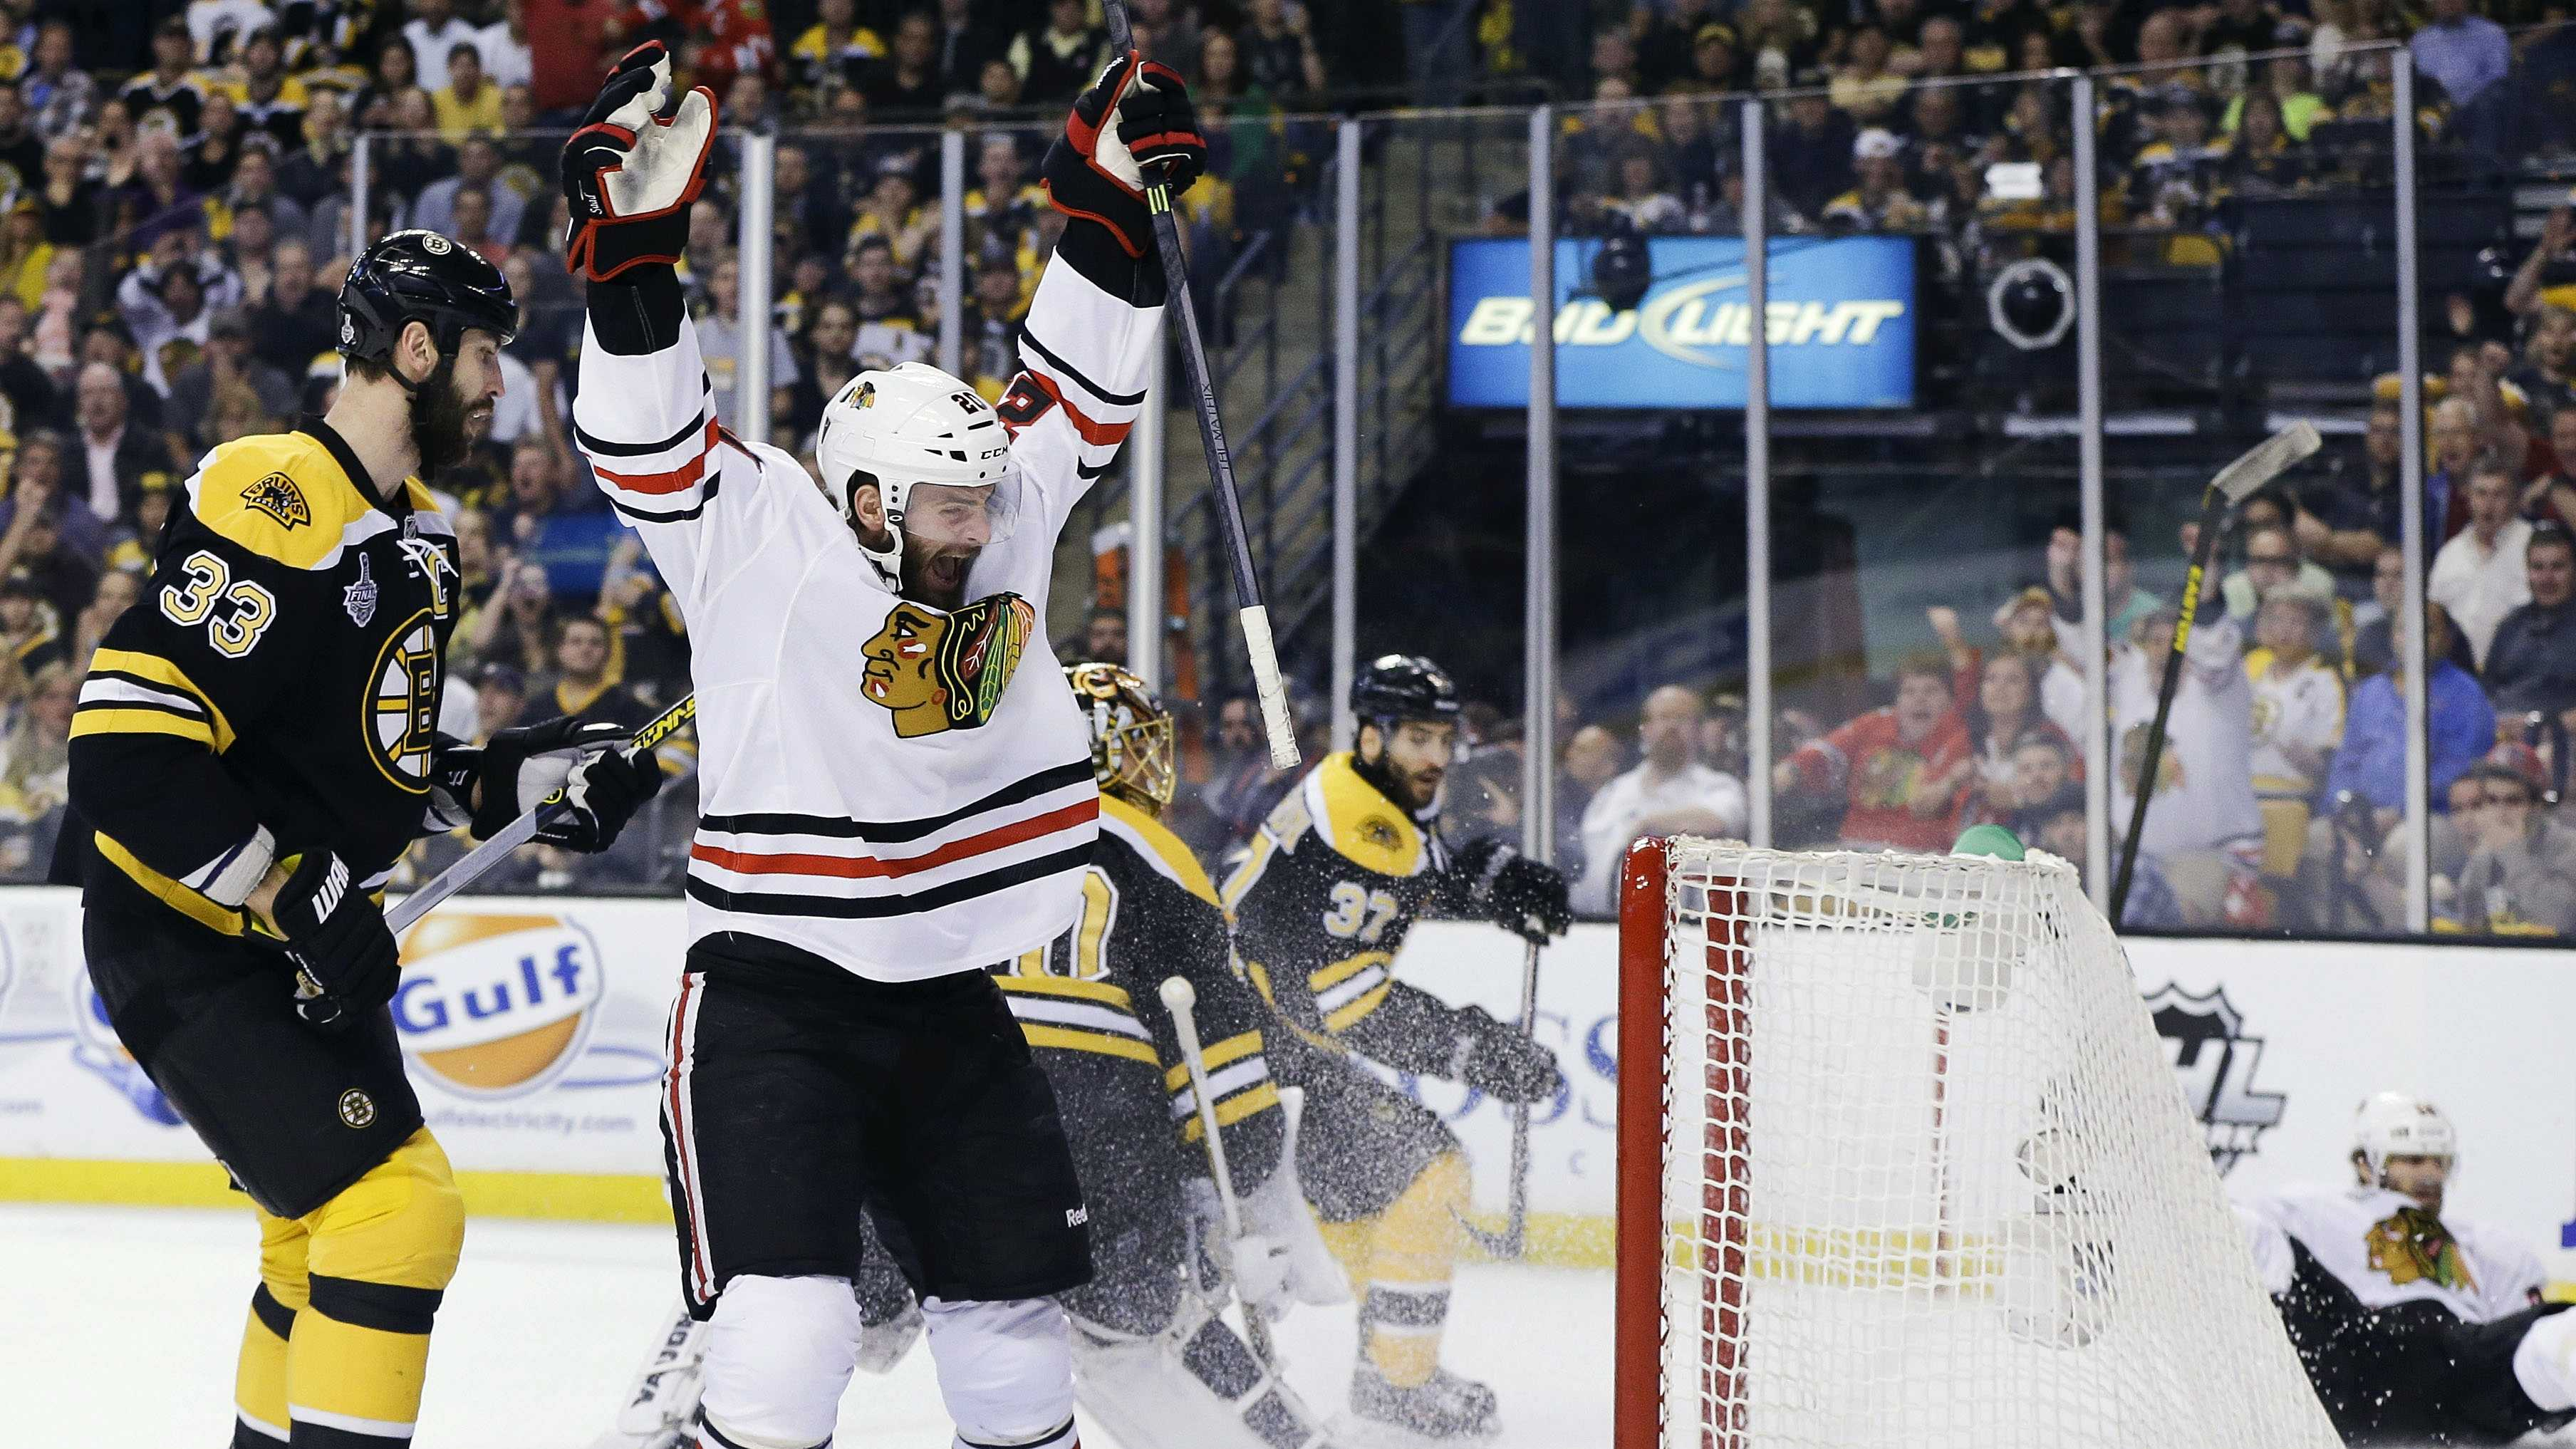 Chicago Blackhawks left wing Brandon Saad, center, celebrates a goal by Blackhawks center Michal Handzus, right, in front of Boston Bruins defenseman Zdeno Chara (33) during the first period in Game 4 of the NHL hockey Stanley Cup Finals, Wednesday, June 19, 2013, in Boston.